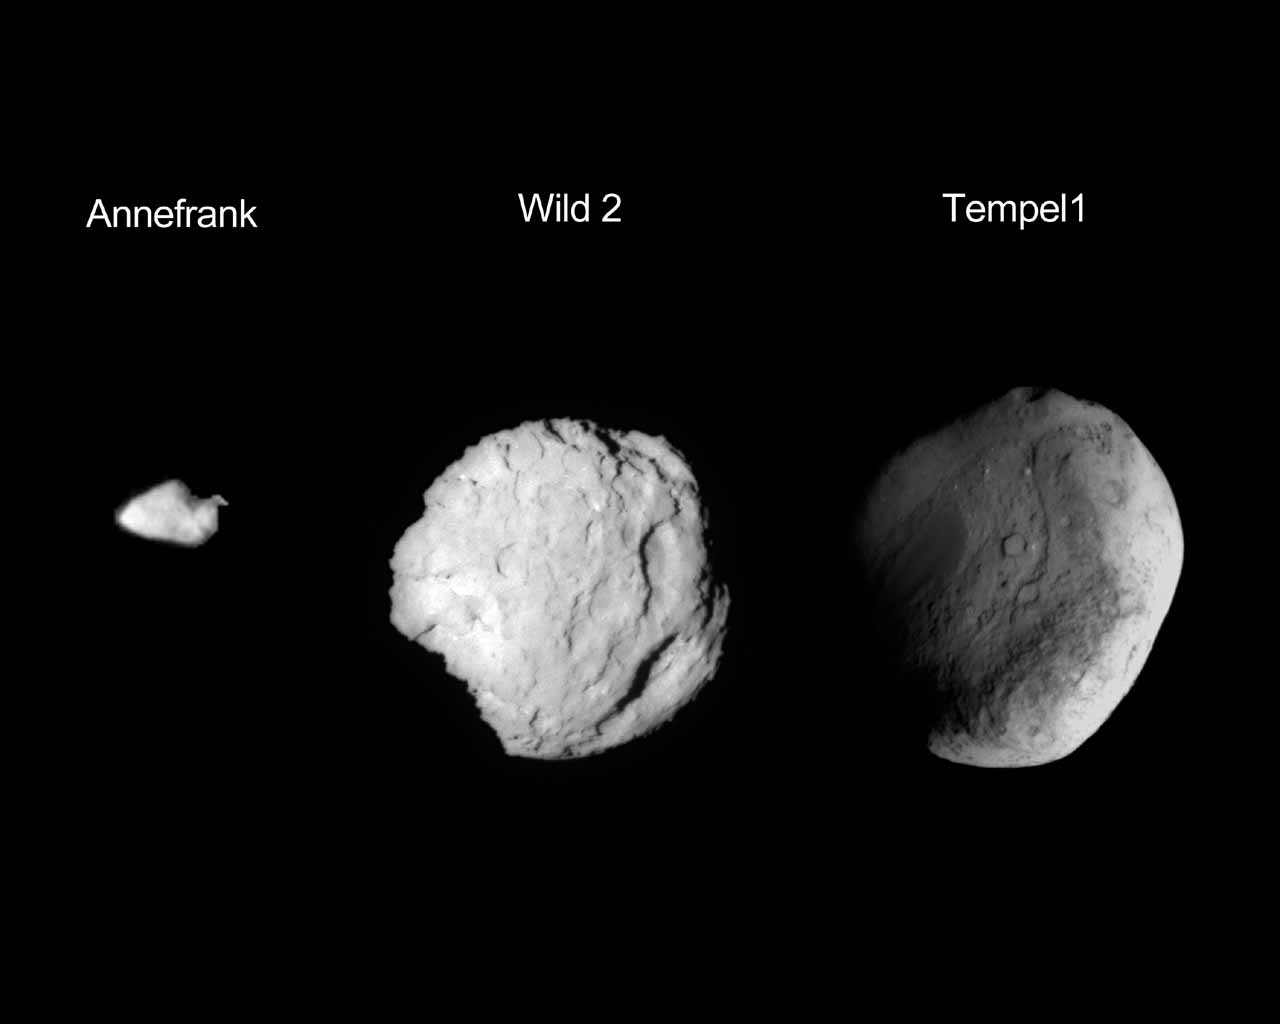 This composite image shows the three small worlds NASA's Stardust spacecraft encountered during its 12 year mission. Stardust performed a flyby of asteroid Annefrank in 2002, Comet Wild in 2004, and Tempel 1 in 2011.